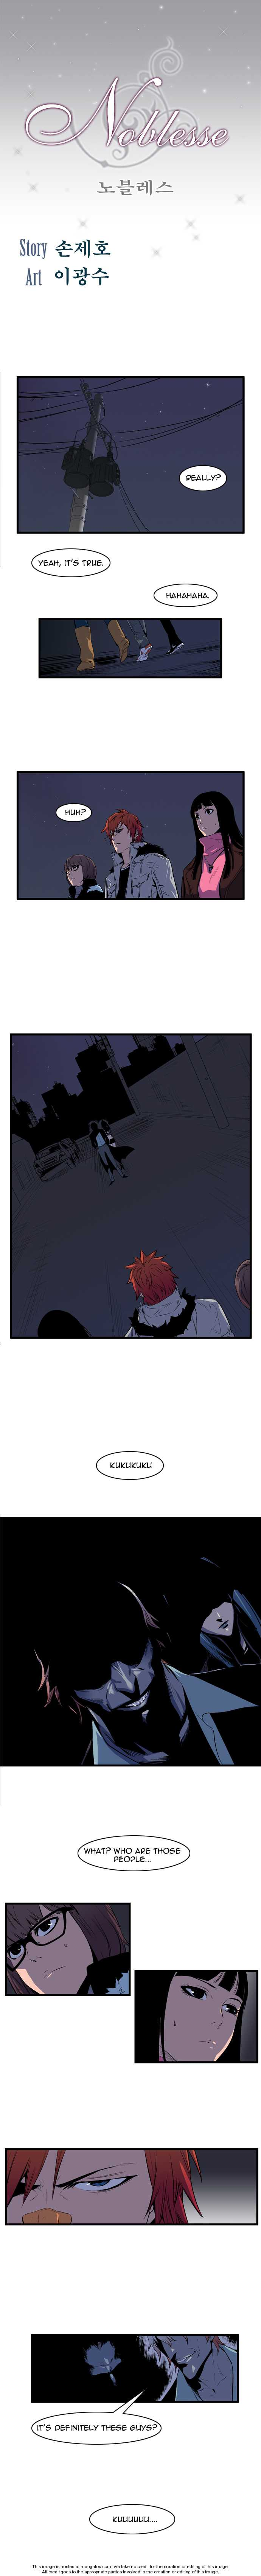 Noblesse 66 Page 1